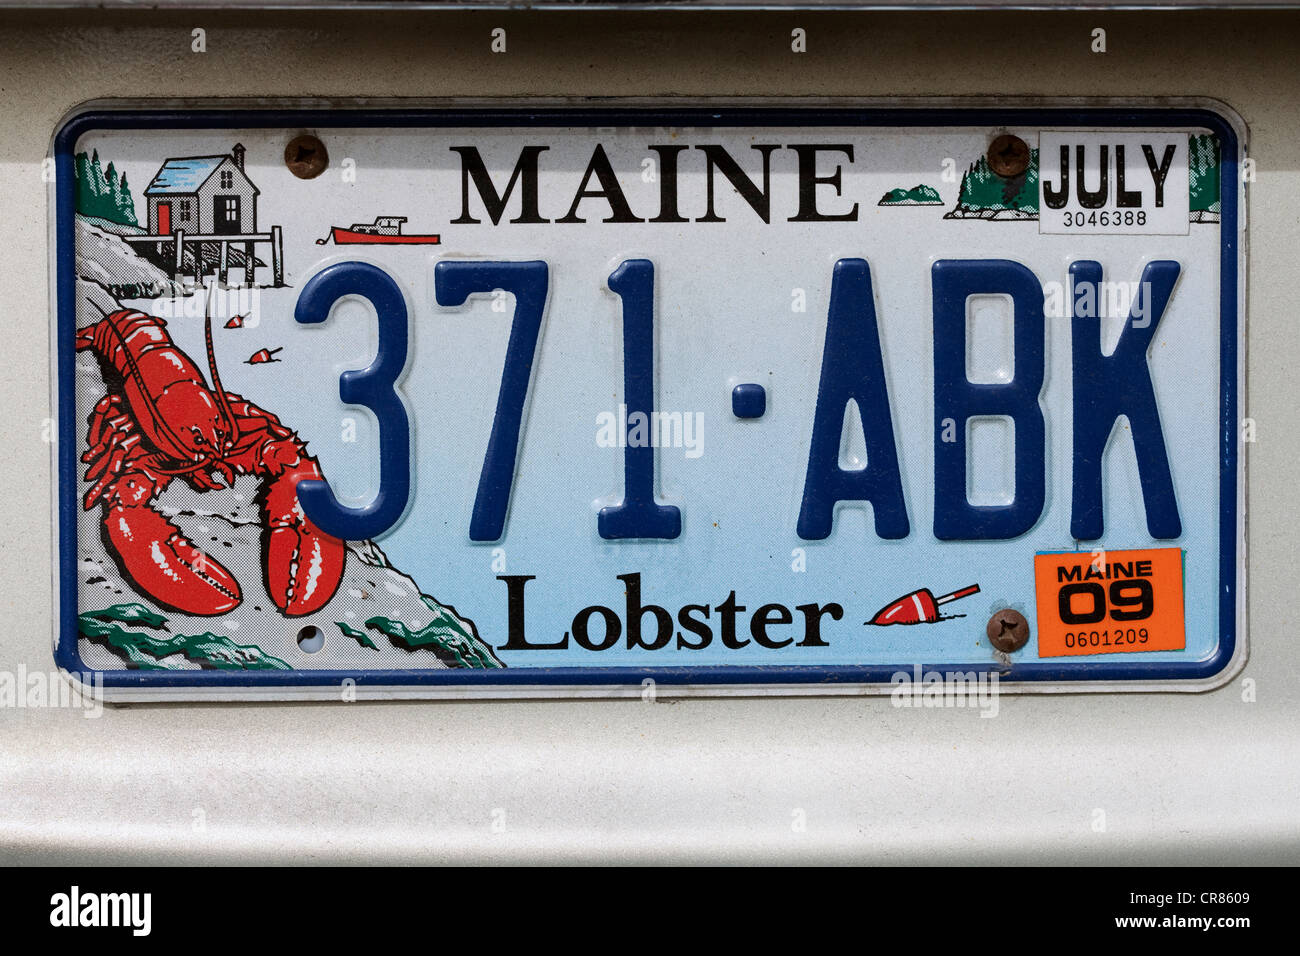 United States, New England, Maine, car registration with the drawing of a lobster - Stock Image